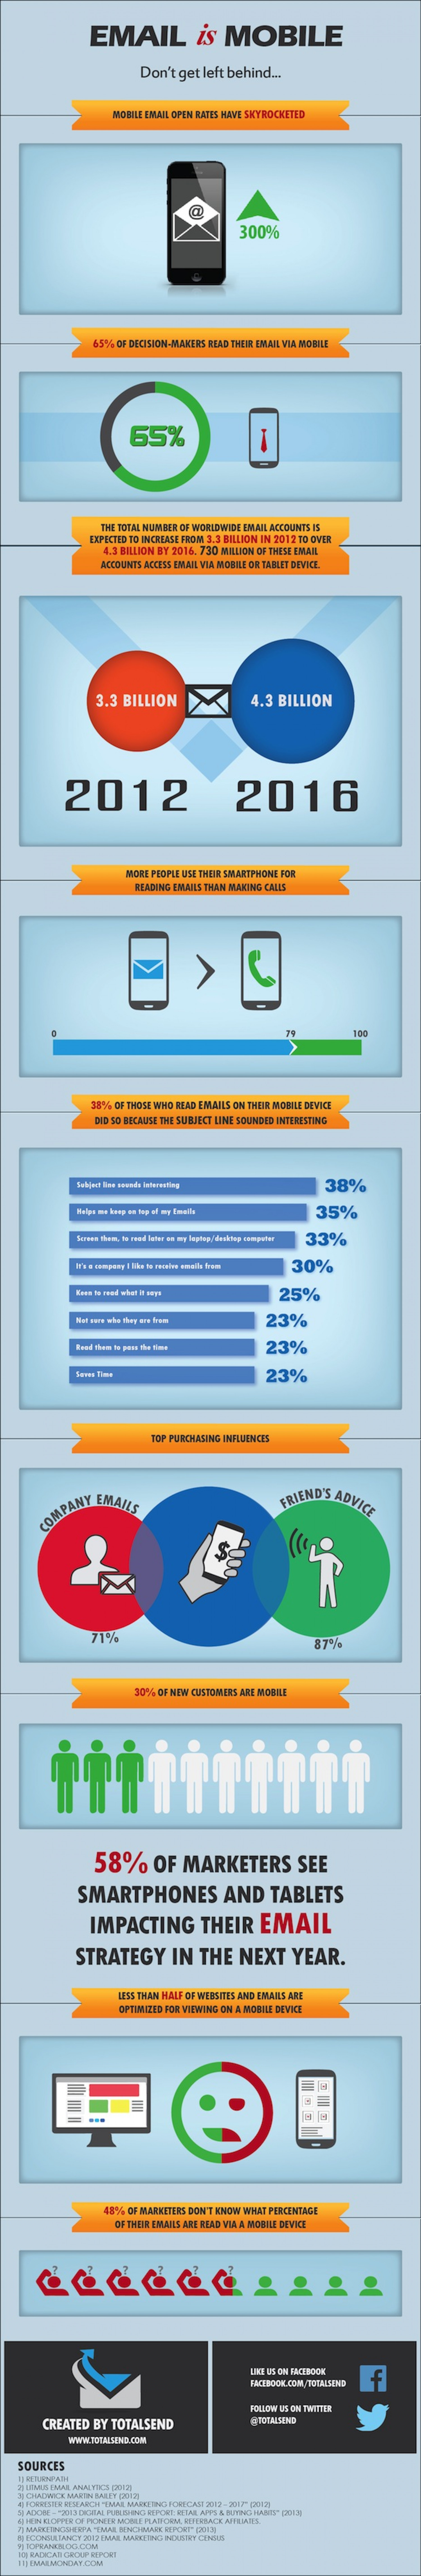 Email is Mobile - Don't get left behind Infographic